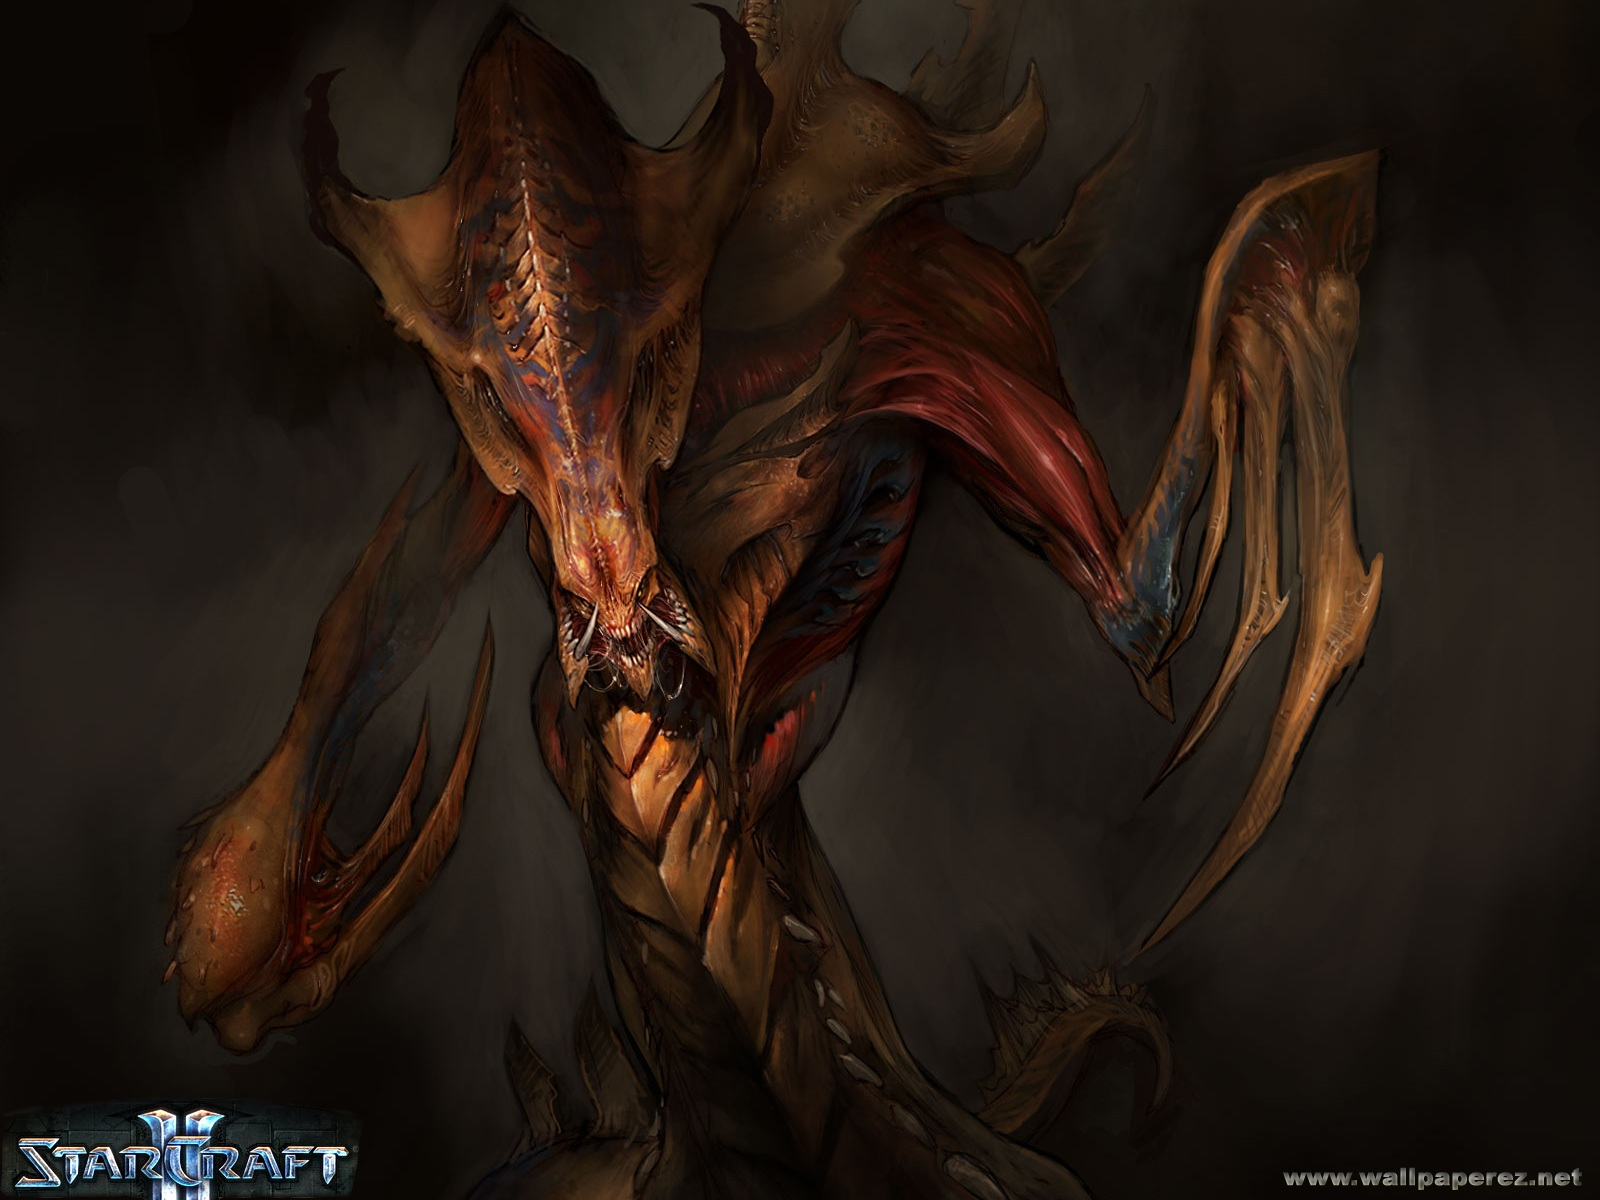 StarCraft 2 zerg lurker wallpaper 03 Hd Wallpapers Starcraft 2